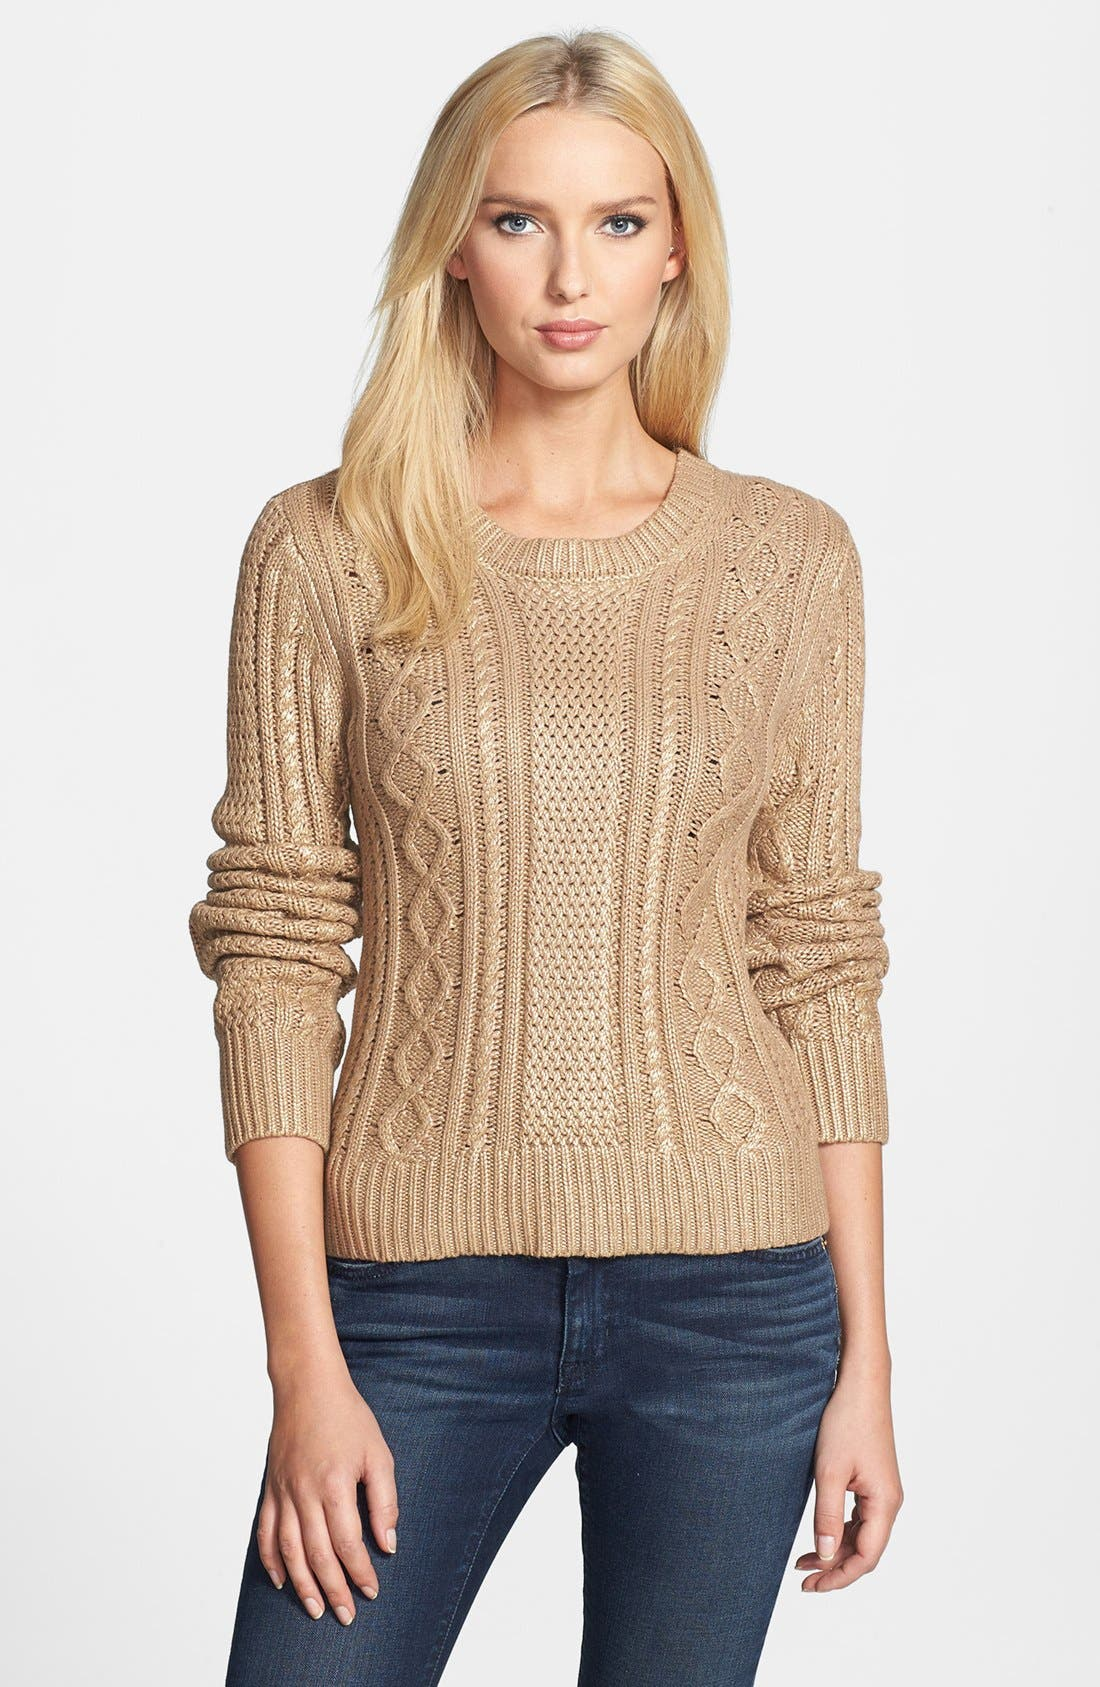 Alternate Image 1 Selected - MICHAEL Michael Kors Foiled Cable Knit Cotton Blend Sweater